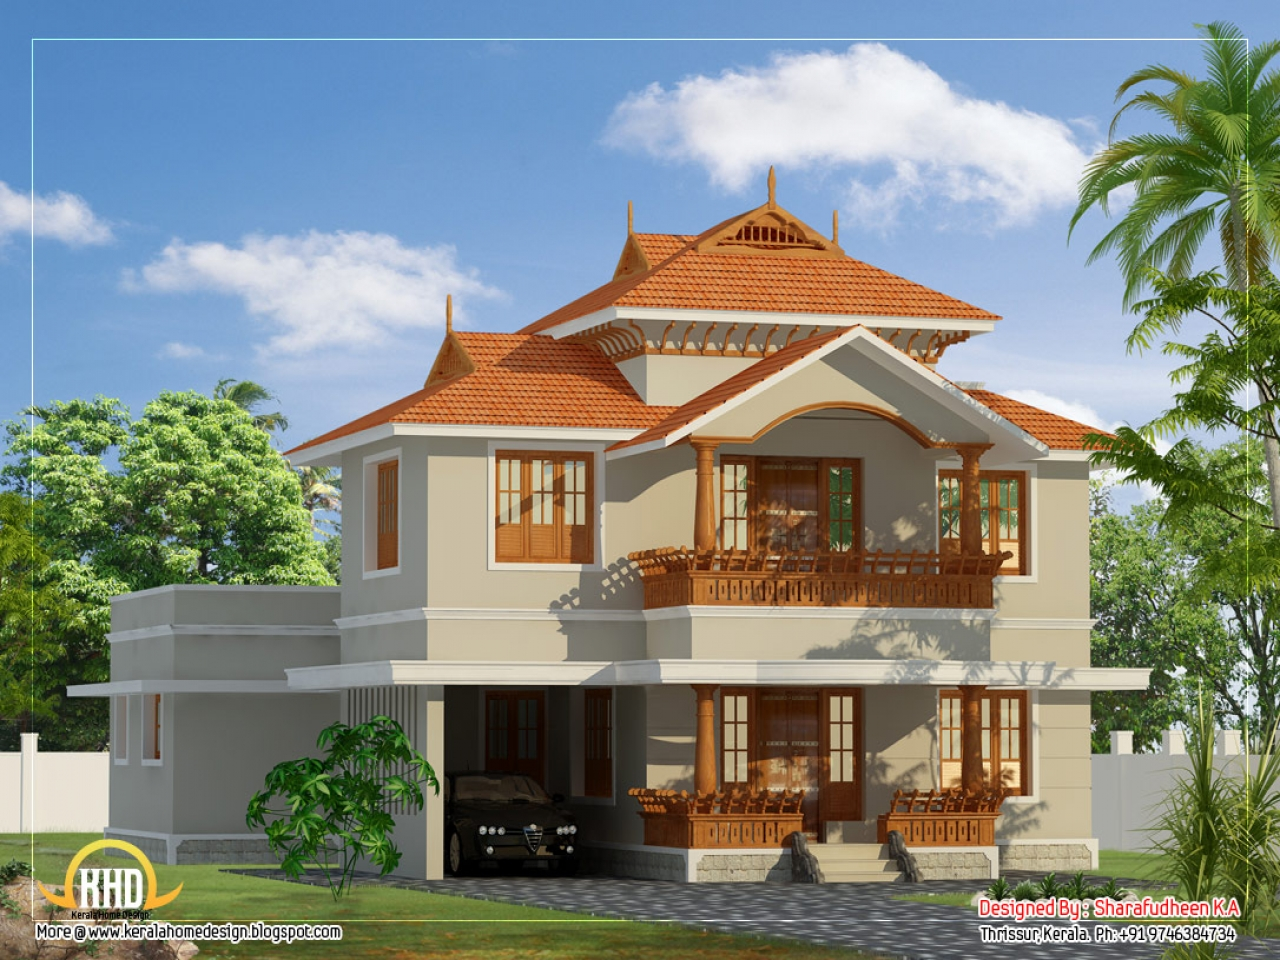 Most beautiful houses in kerala beautiful house designs for Beautiful ranch home designs